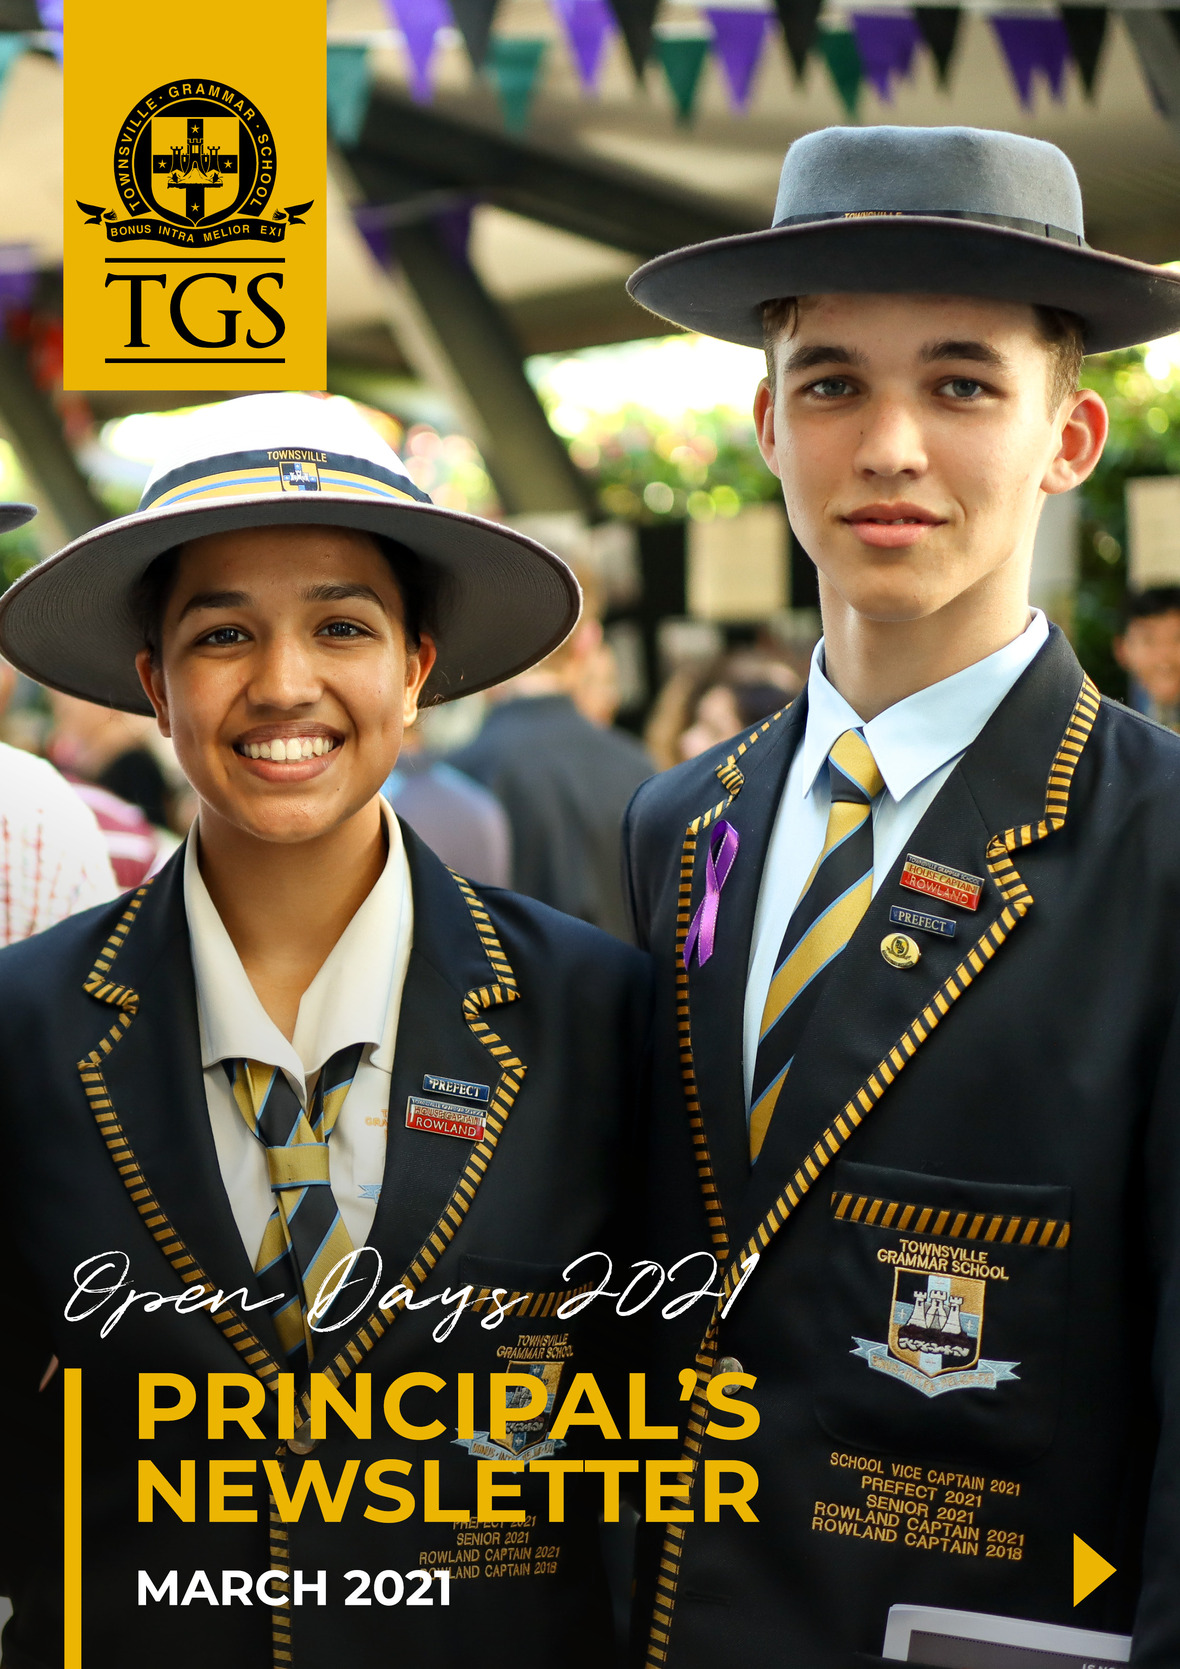 Principal s Newsletter - March cover